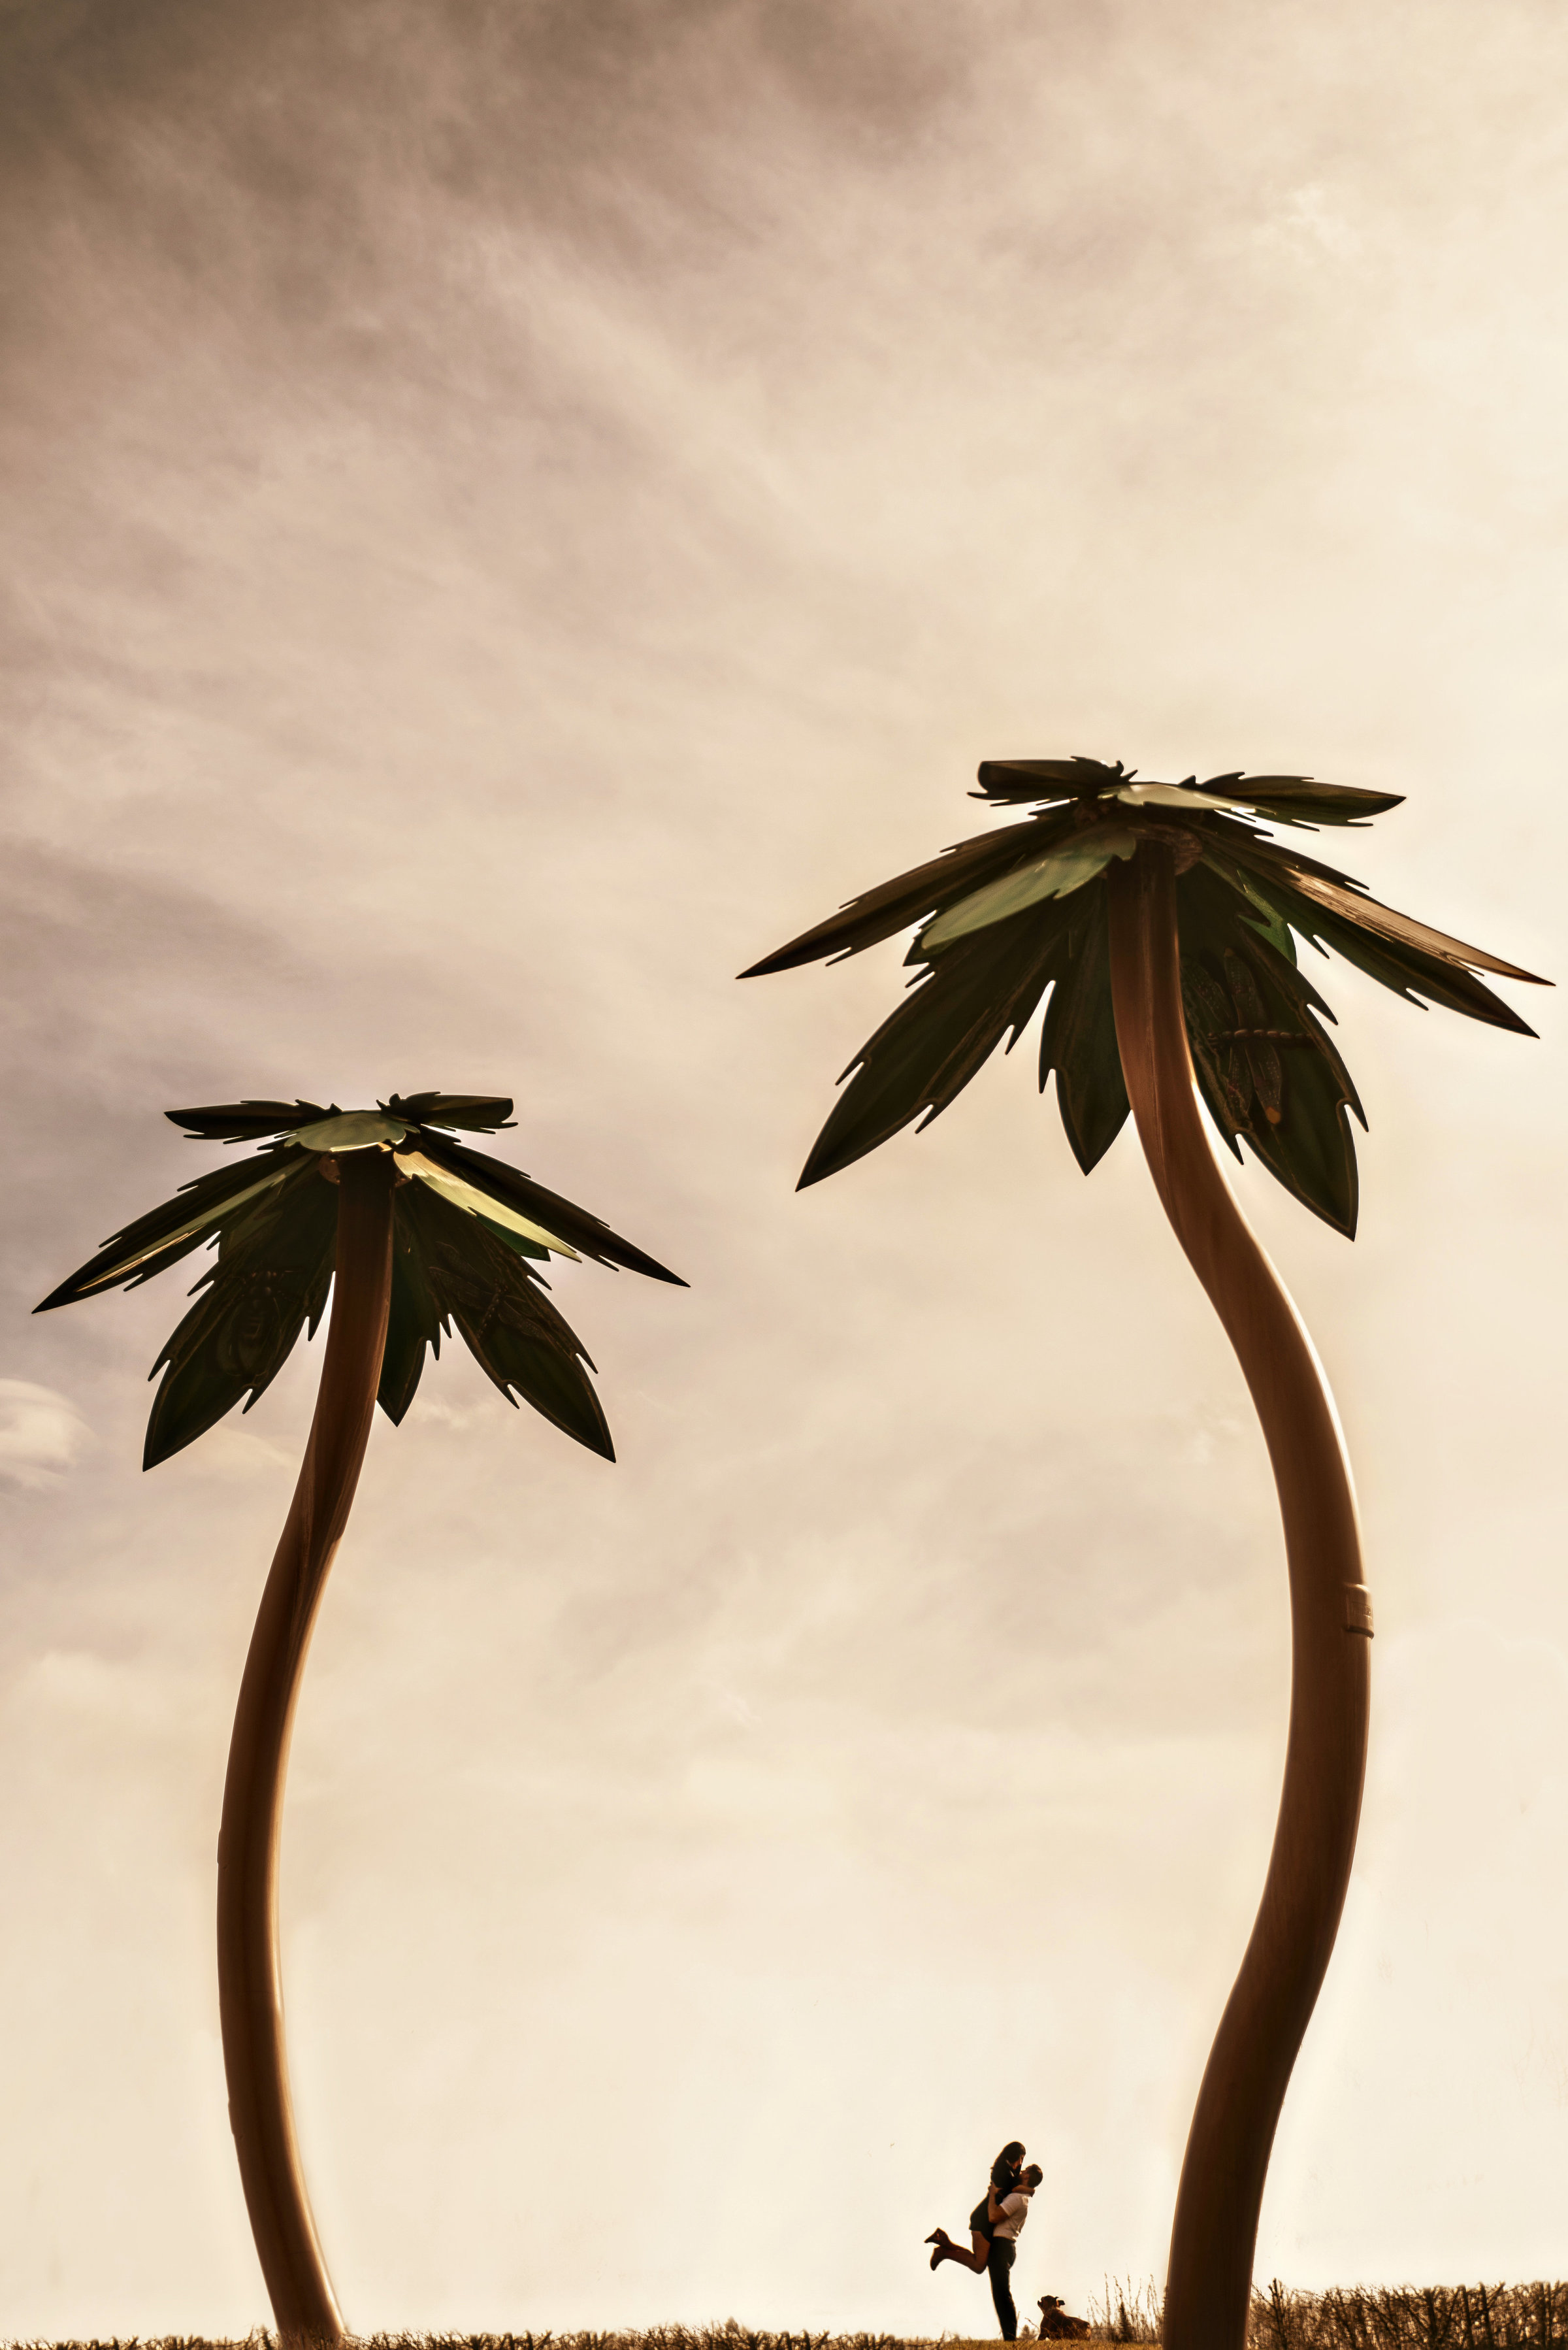 Couple silhouette with palm trees